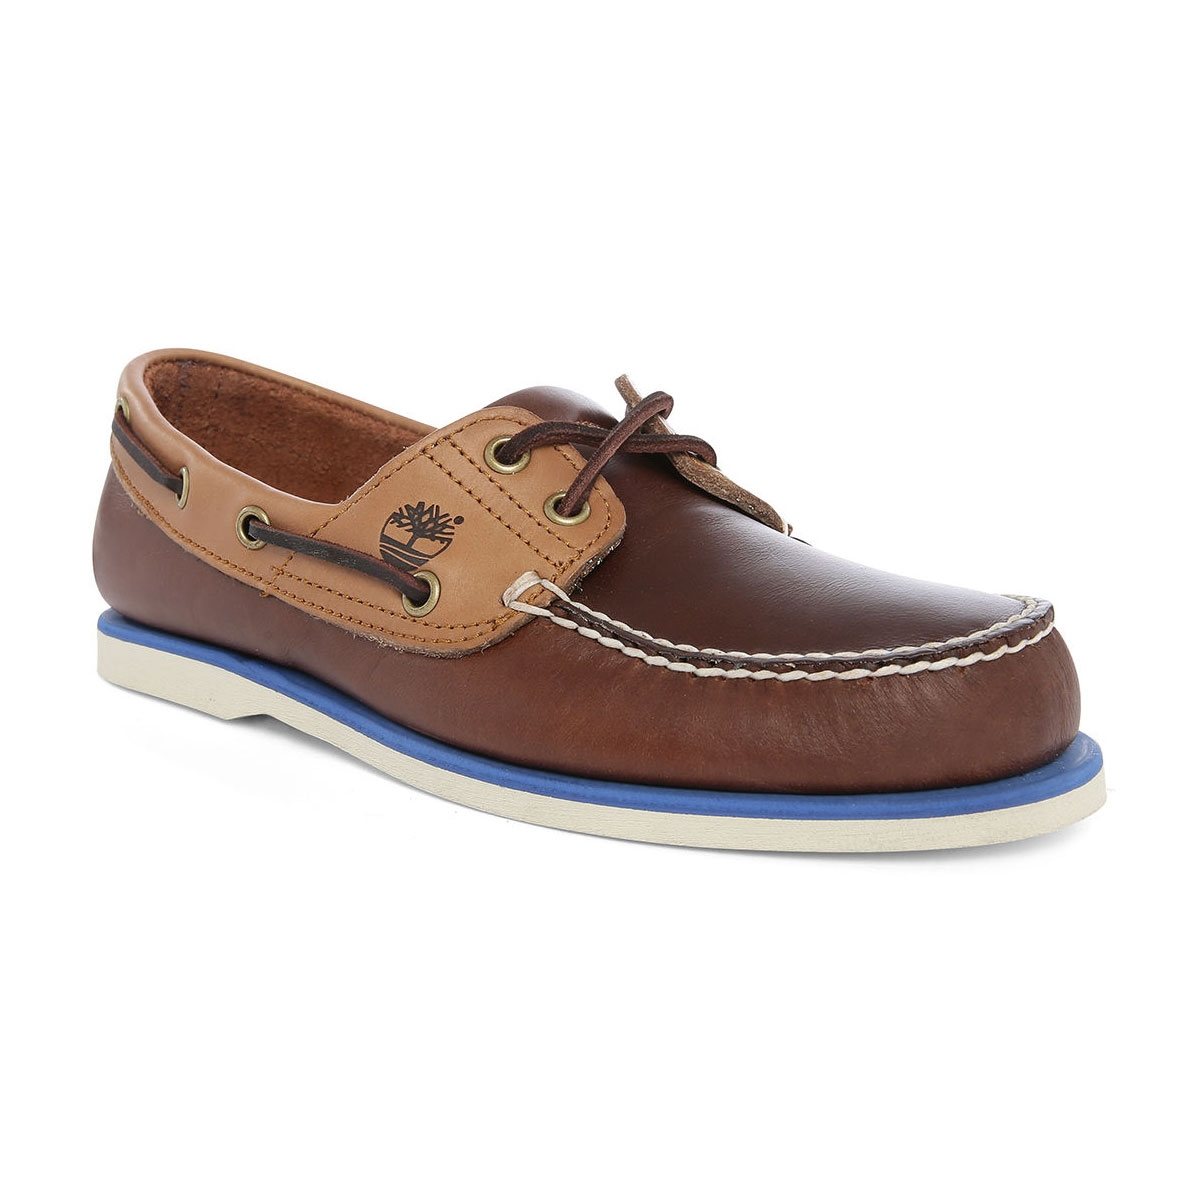 Timberland Classic Boat Shoes Reviews